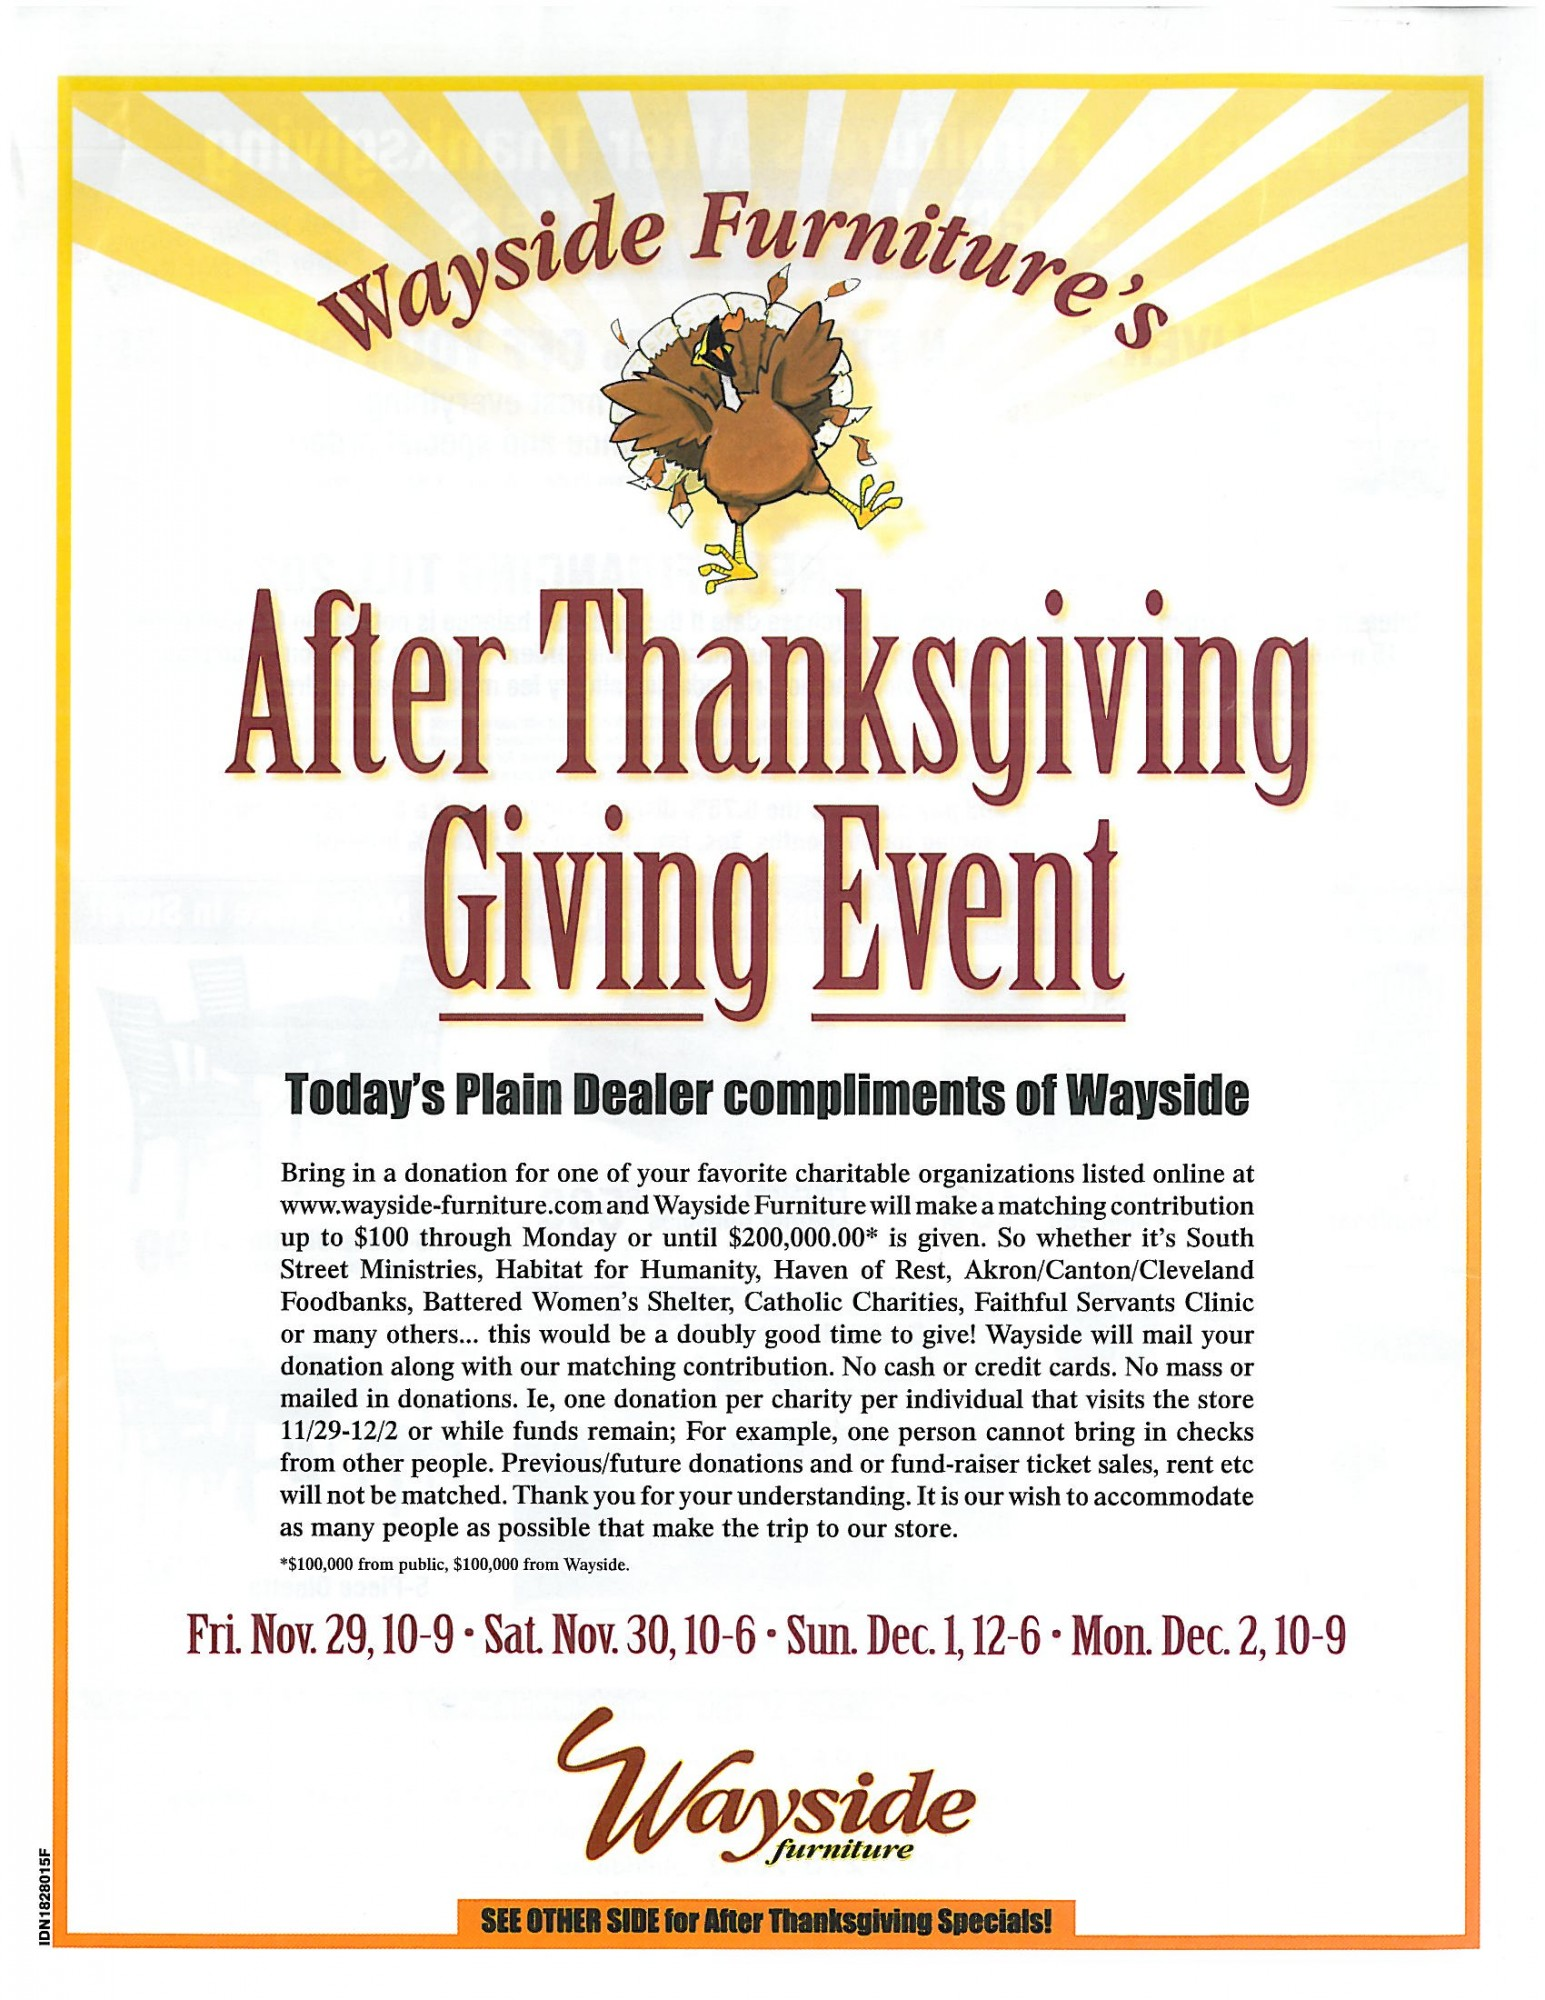 After Thanksgiving Giving Event